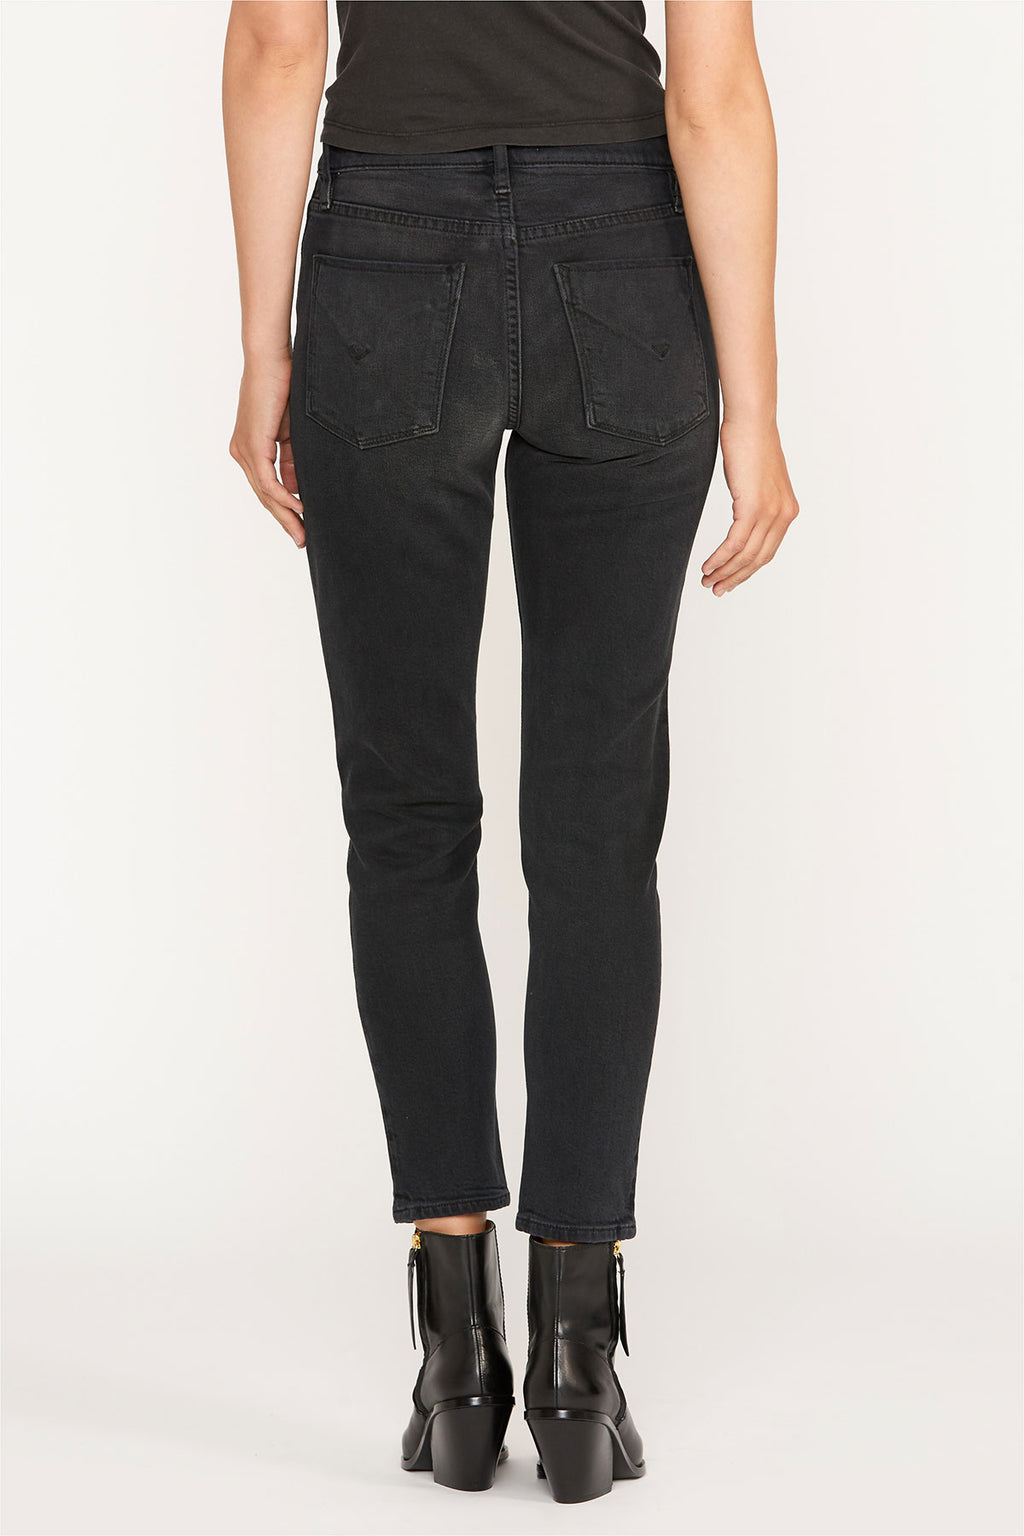 Bettie High-Rise Taper Jean - hudsonjeans